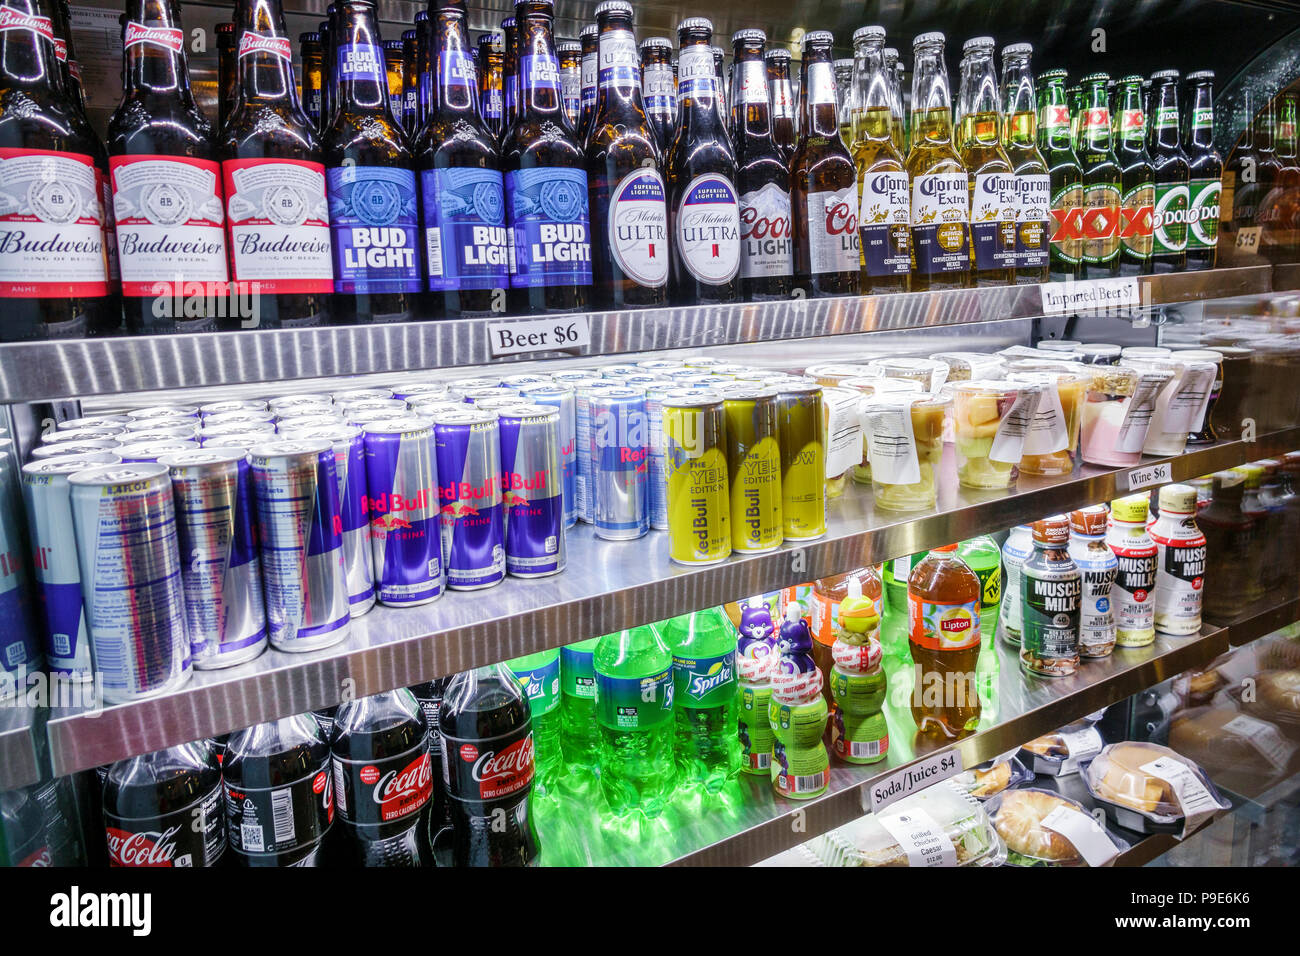 Orlando Florida Doubletree by Hilton Orlando SeaWorld hotel property grounds market cold drinks refrigerated case beer Budweiser brand Red Bull soda Stock Photo